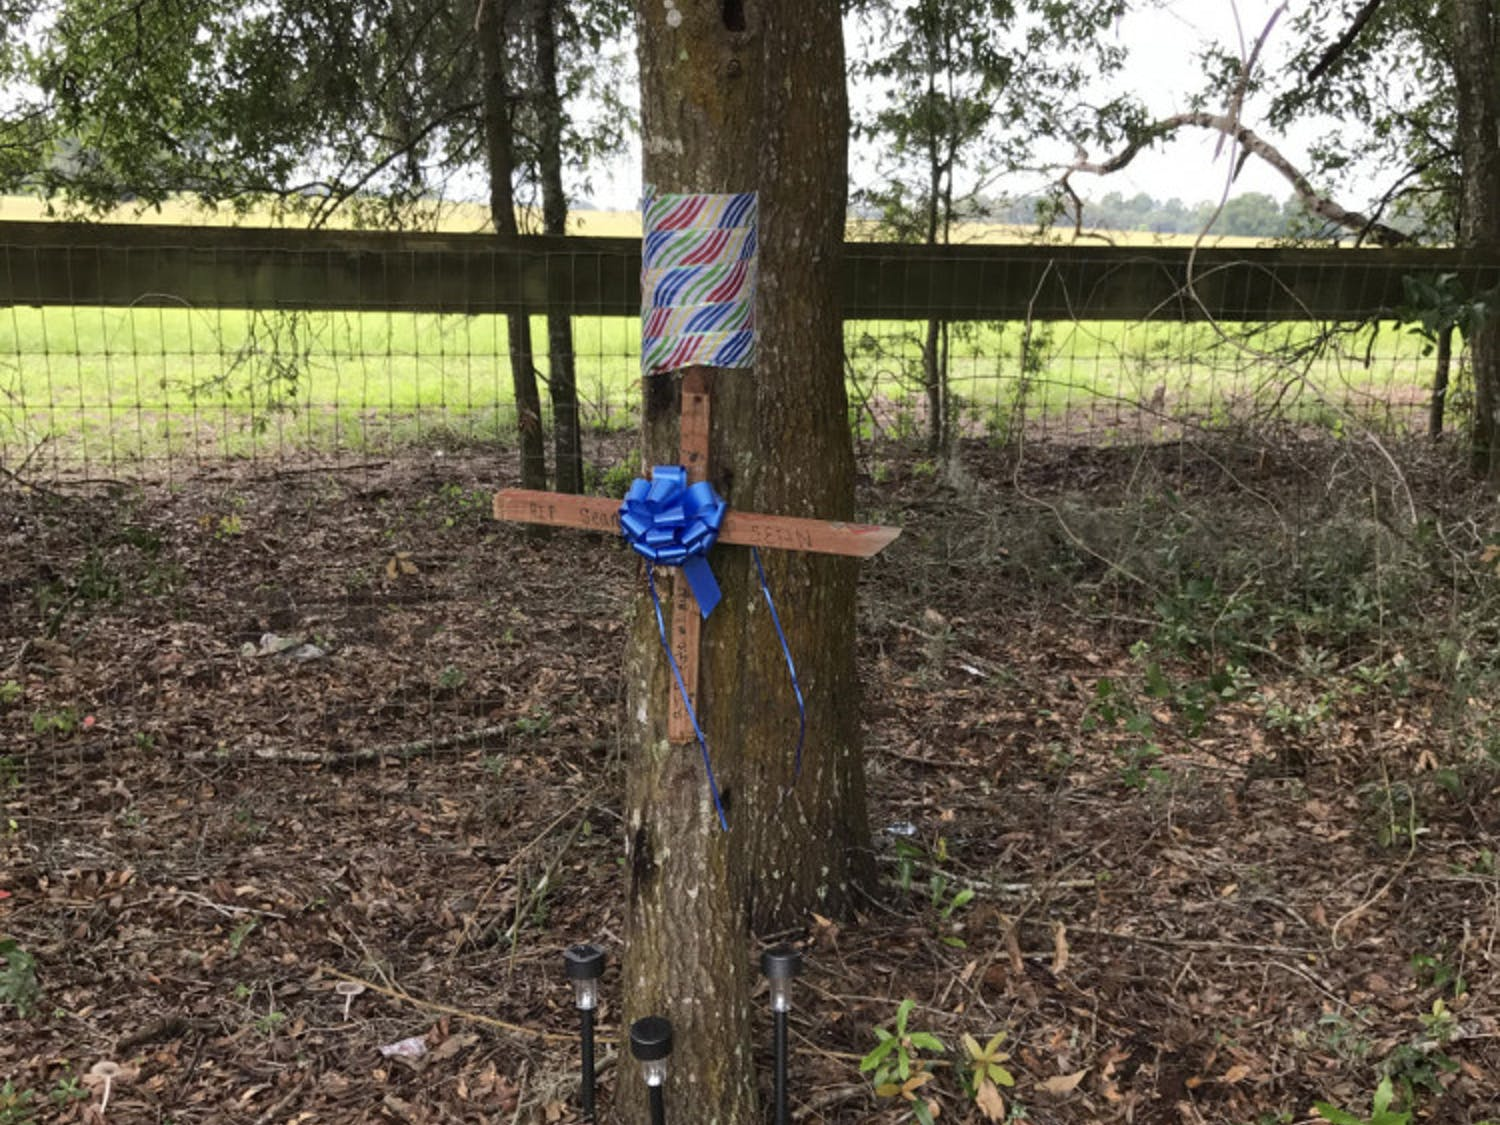 """The tree Sean crashed into is marked by a cross. """"RIP Sean"""" is scrawled across it in permanent marker, along with """"RIP — Kate will miss you."""""""